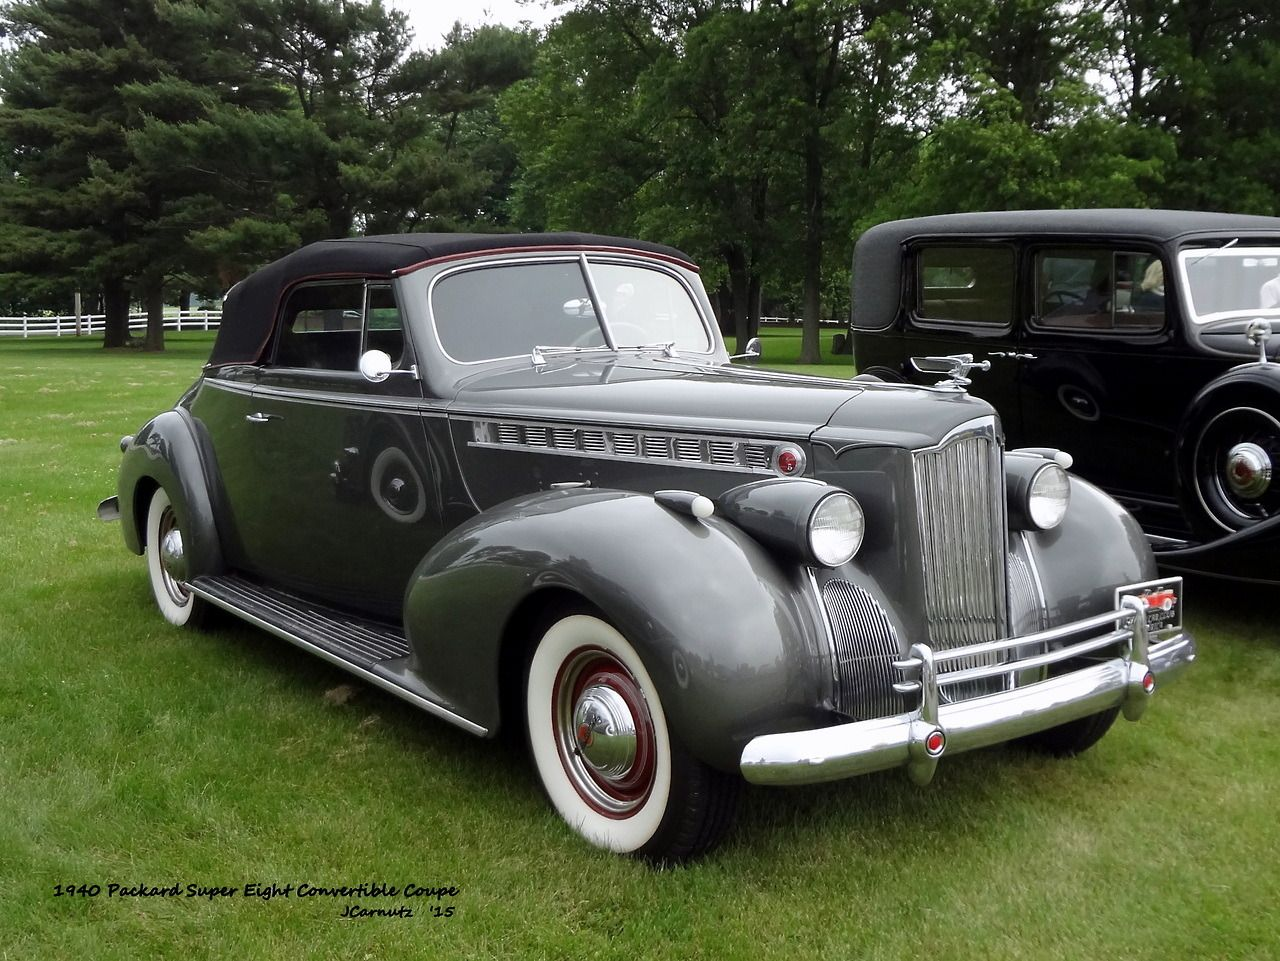 1940 Packard Super Eight Convertible Coupe | Special Cars ...